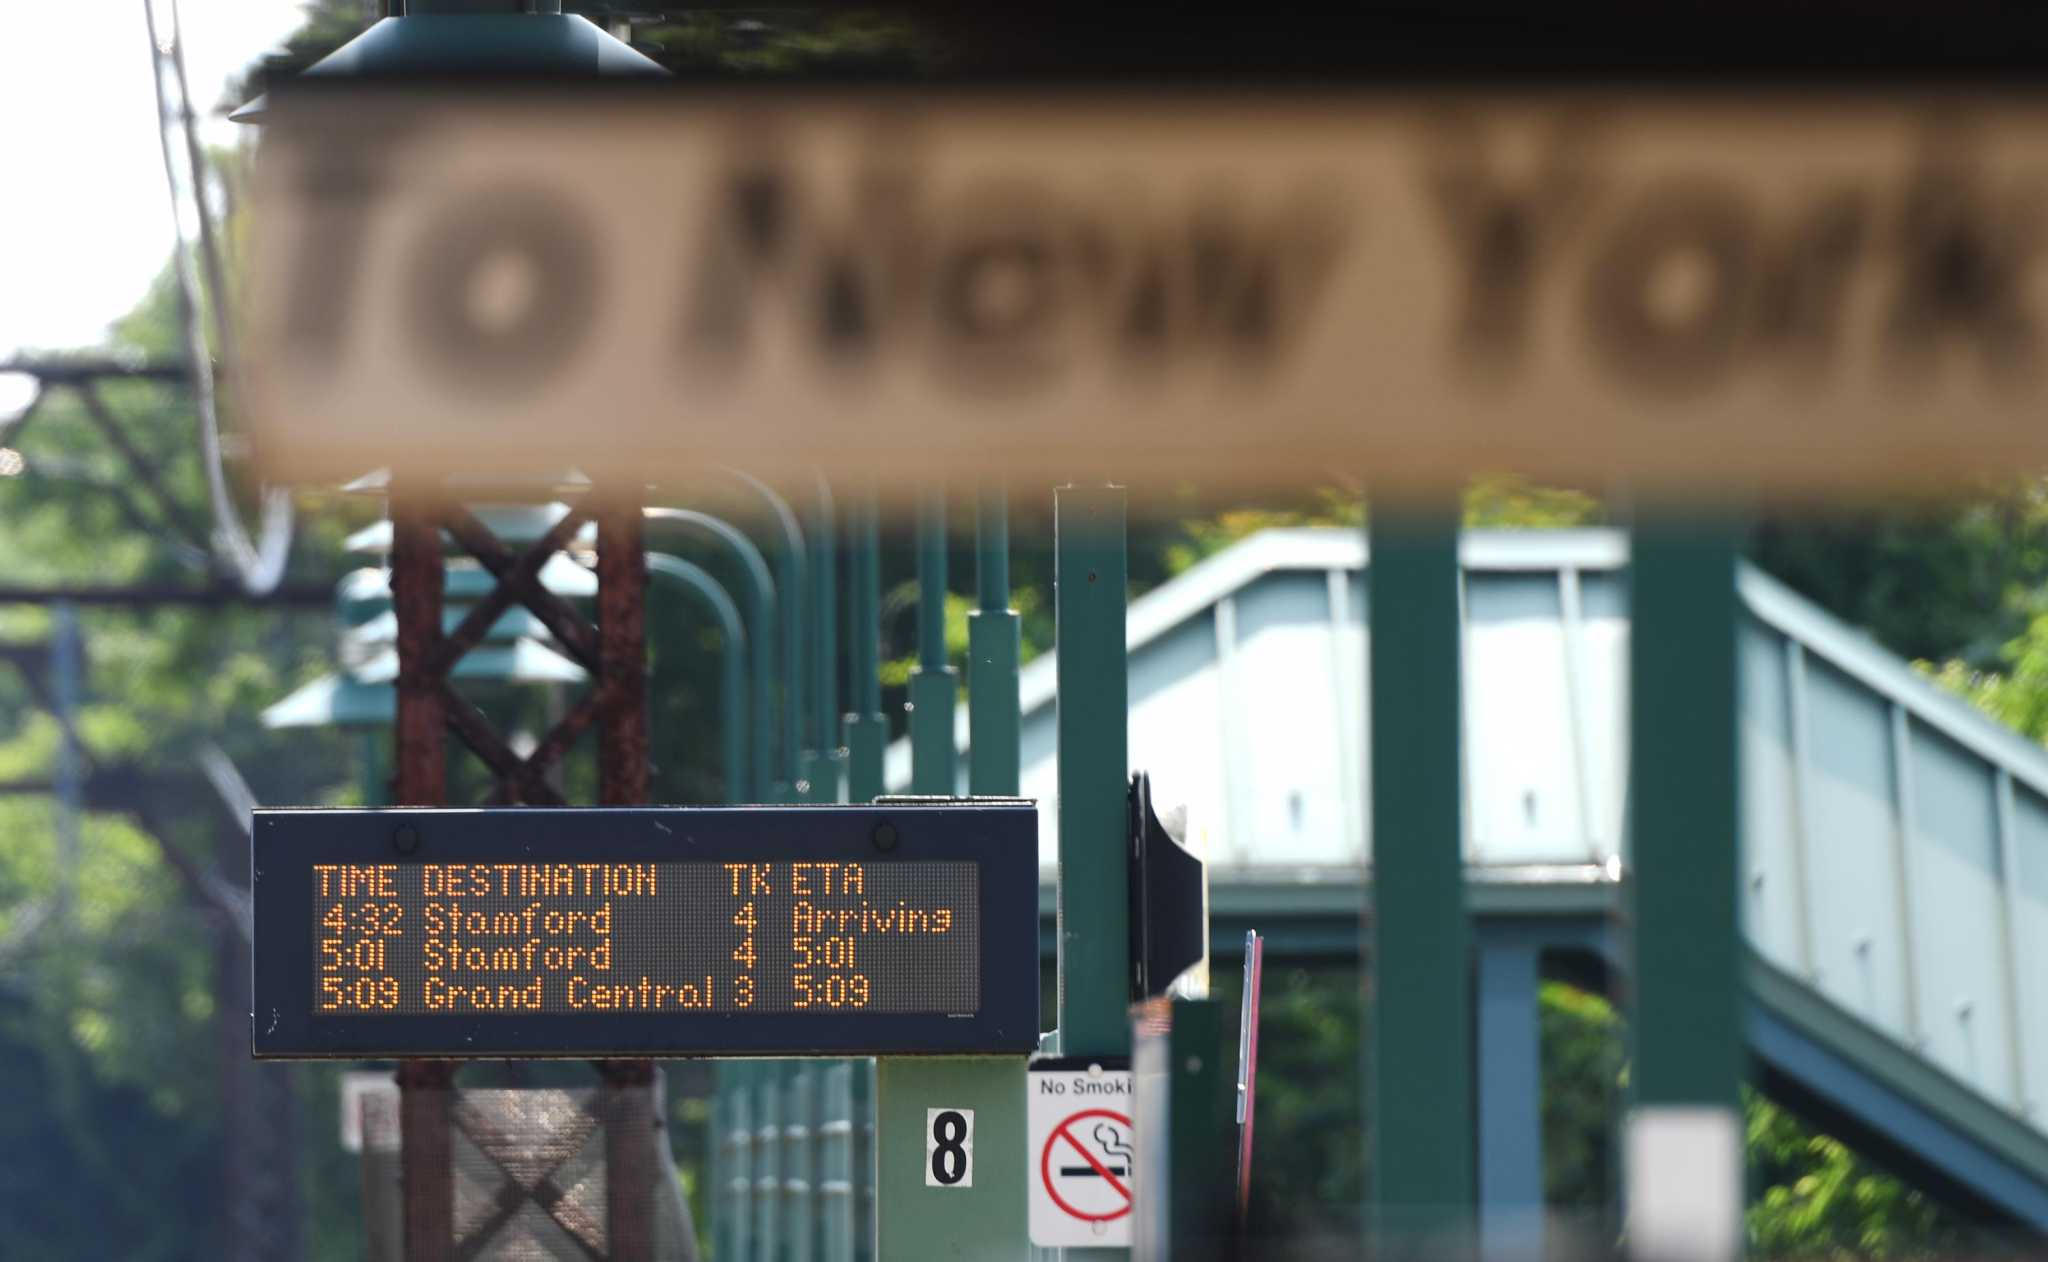 Six minutes late? Metro-North considers that 'on-time': Getting There